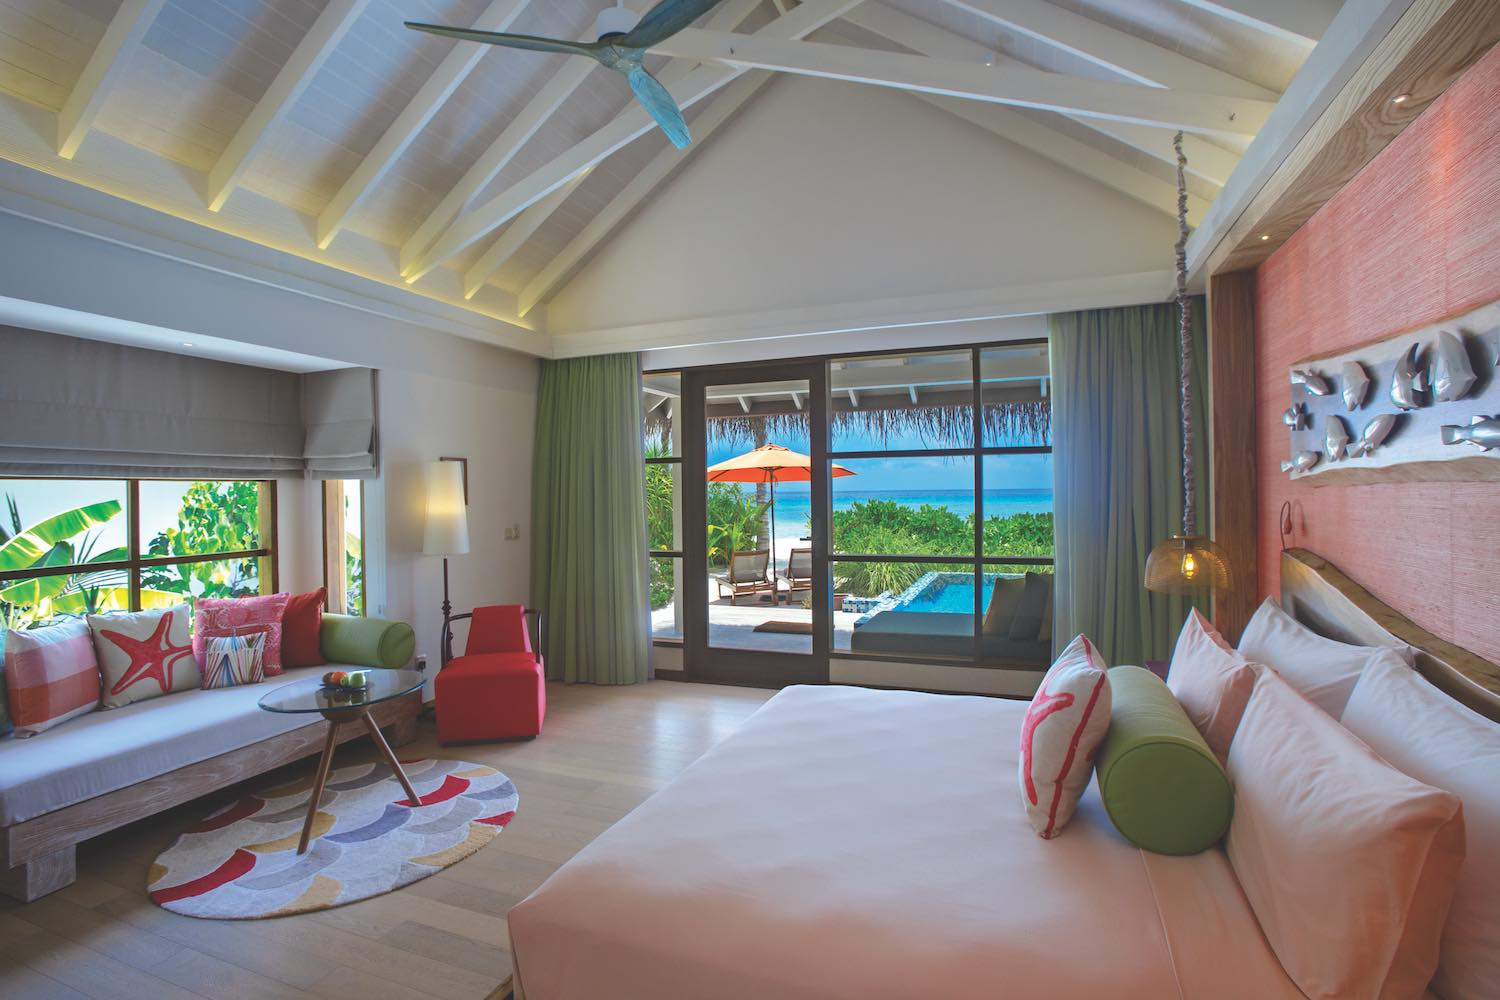 maldives-oblu-select-at-sangeli-deluxe-beach-villa-with-pool-holiday-honeymoon-vacation-invite-to-paradise.jpg